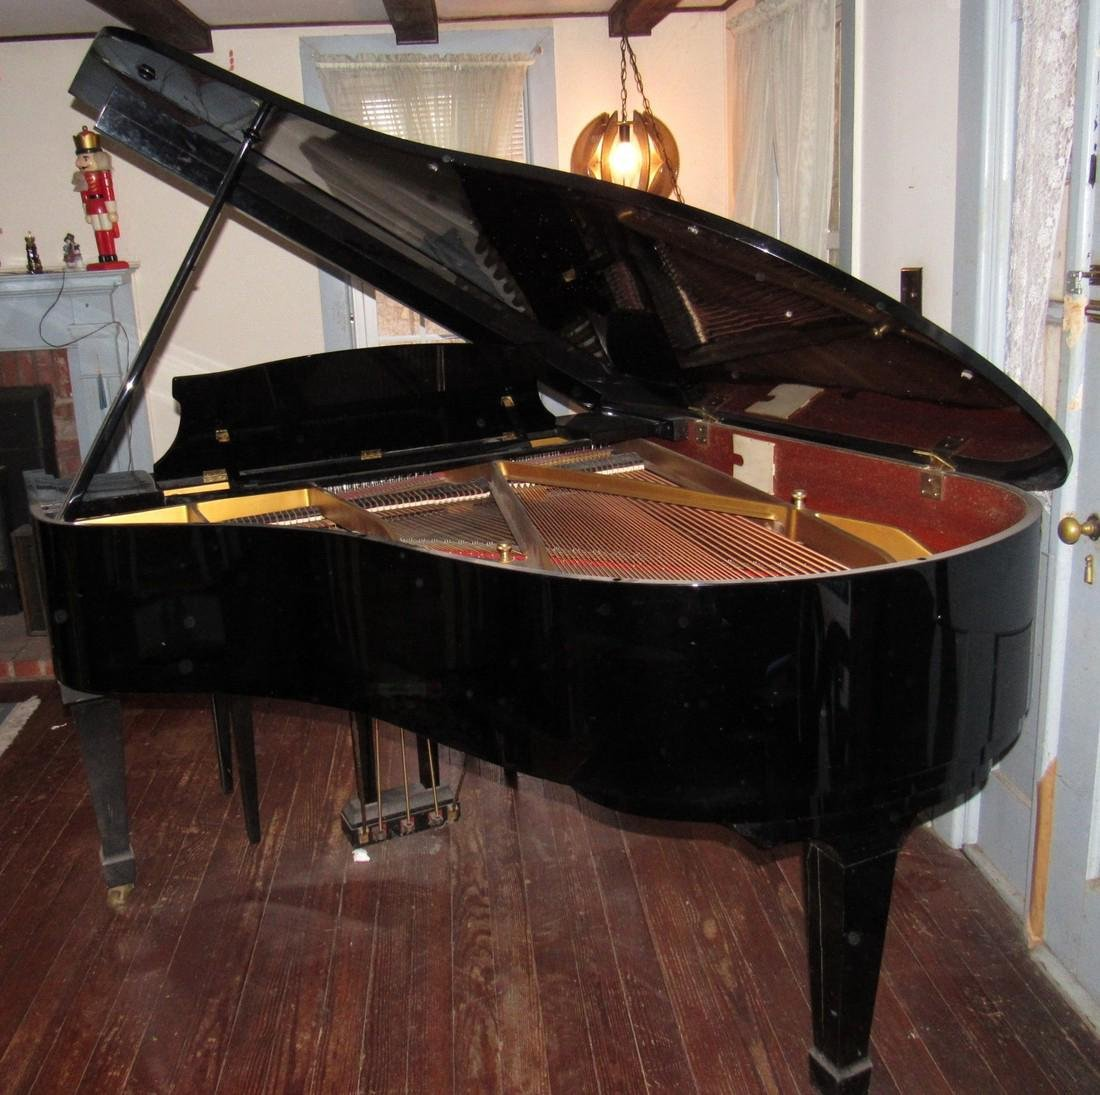 K. Kawai KG-2C Living Grand Piano Black - 5